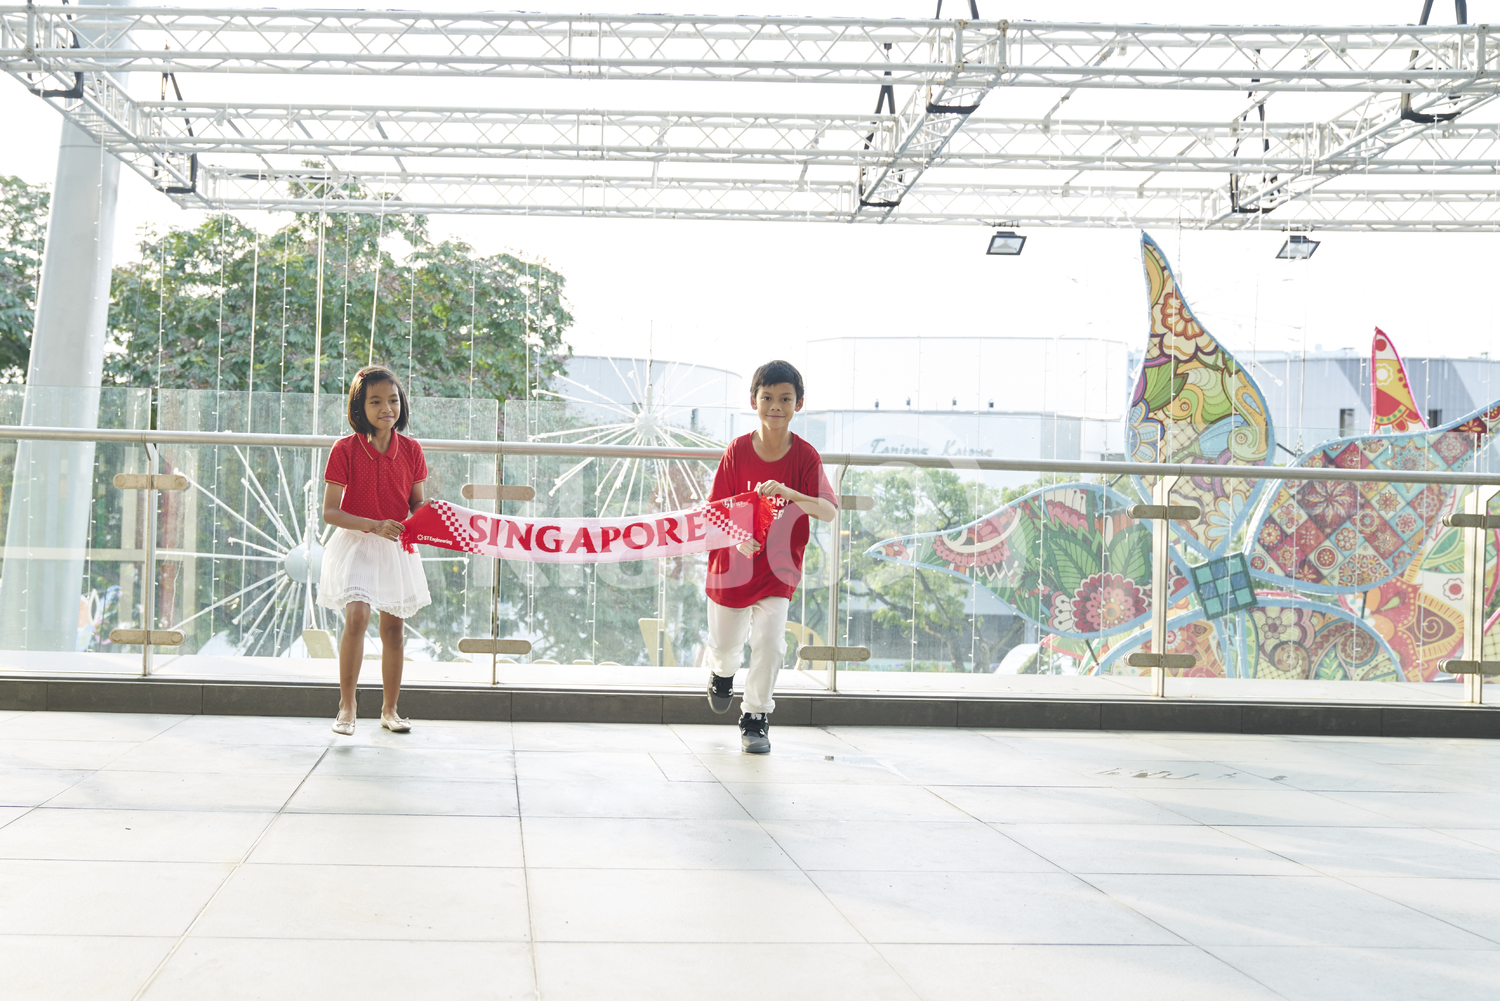 Two siblings celebrating Singapore's National Day